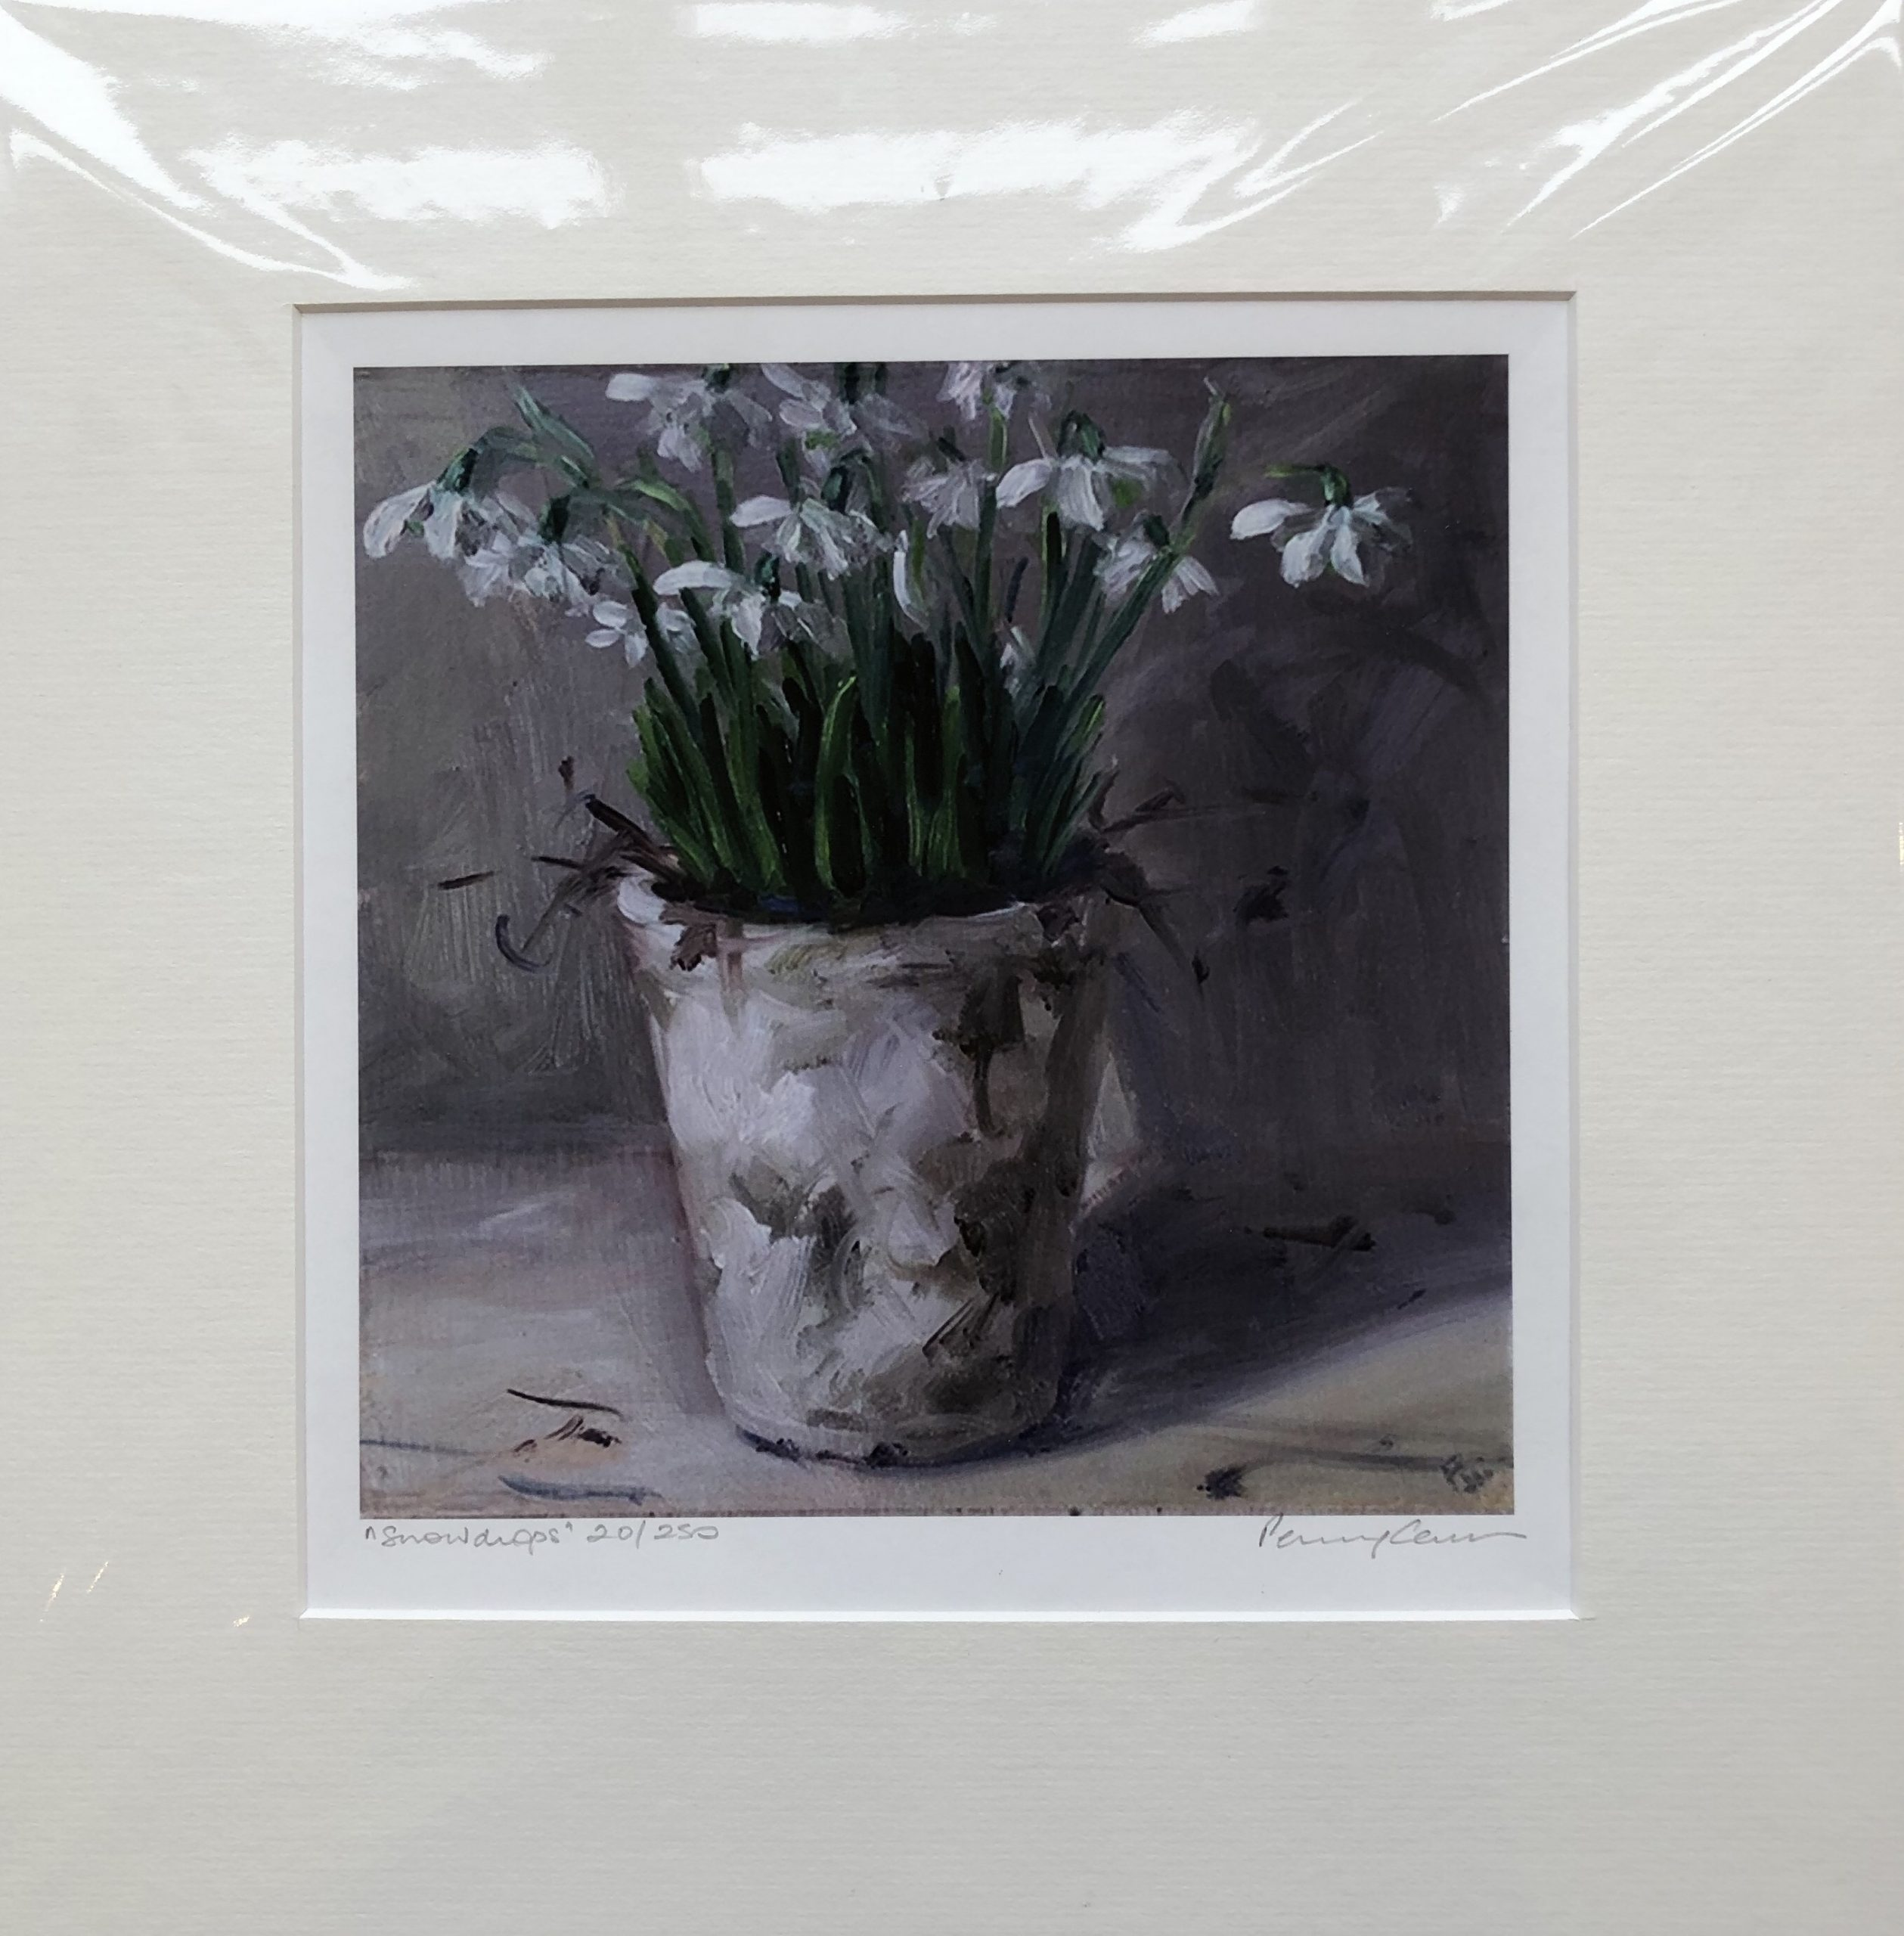 Snowdrops by Penny German